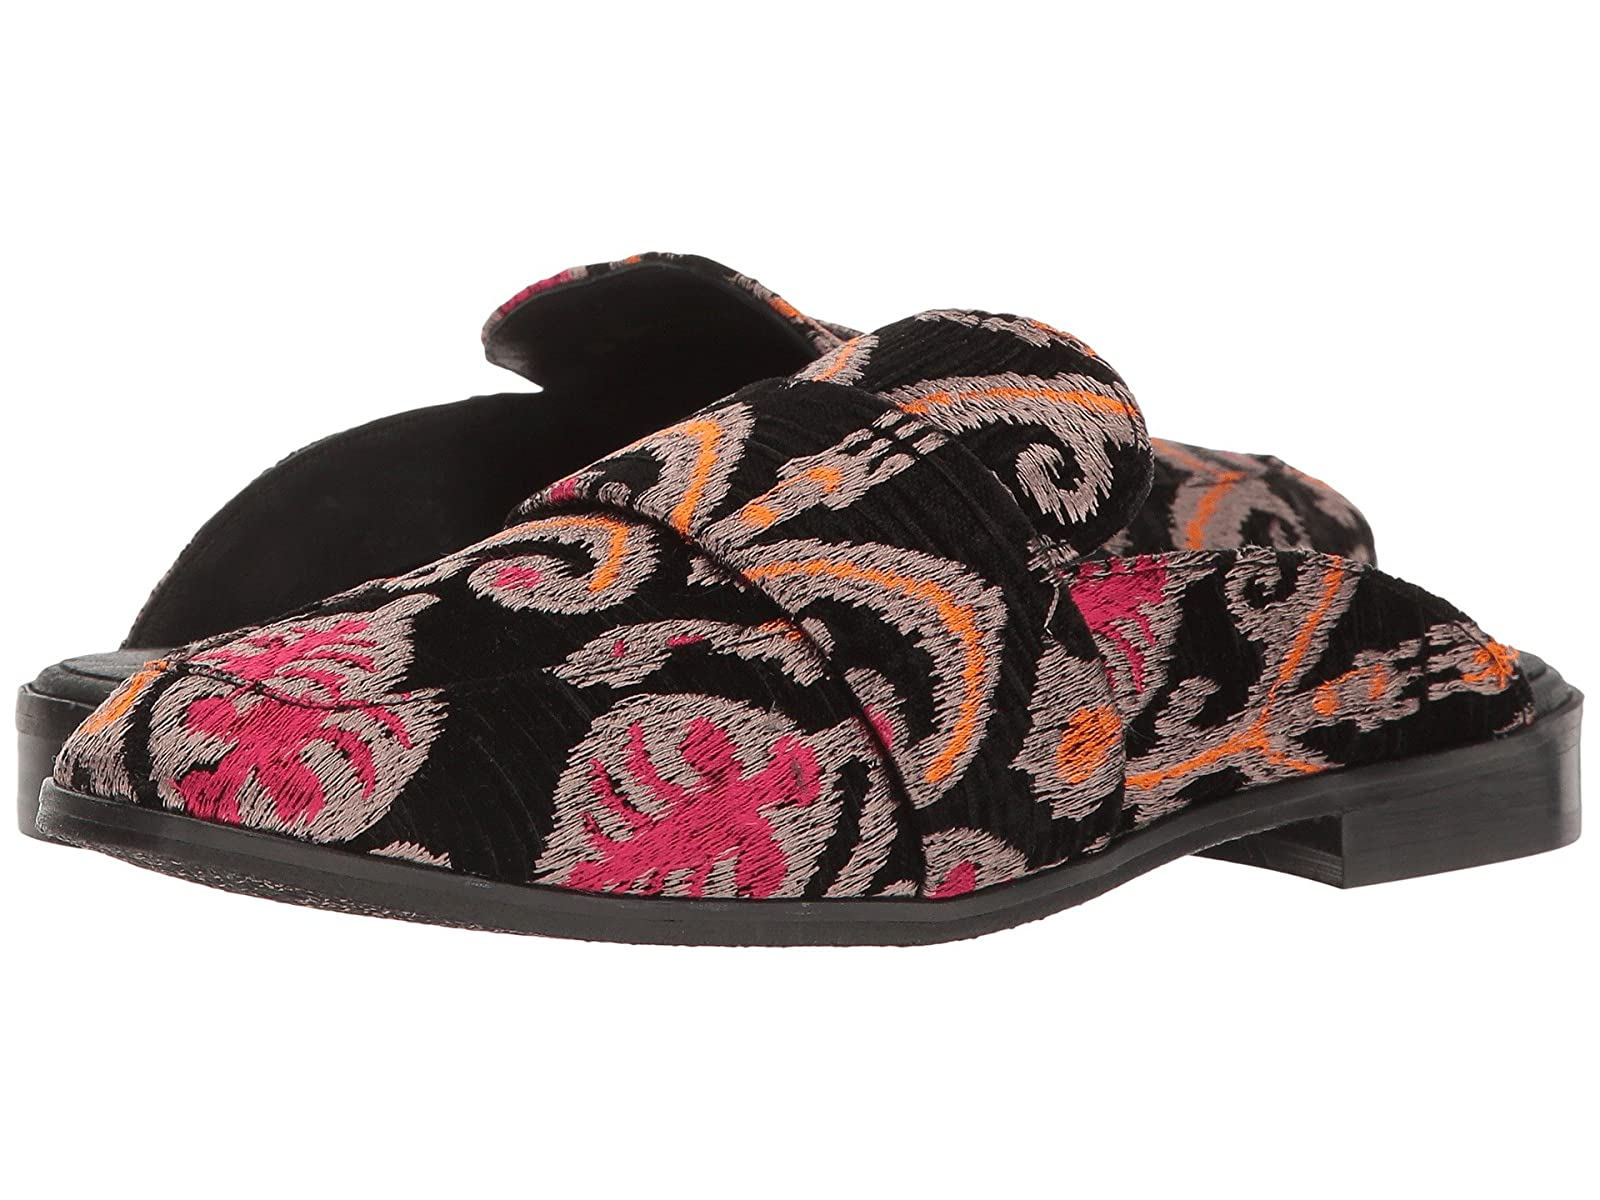 Free People Brocade At Ease LoaferCheap and distinctive eye-catching shoes